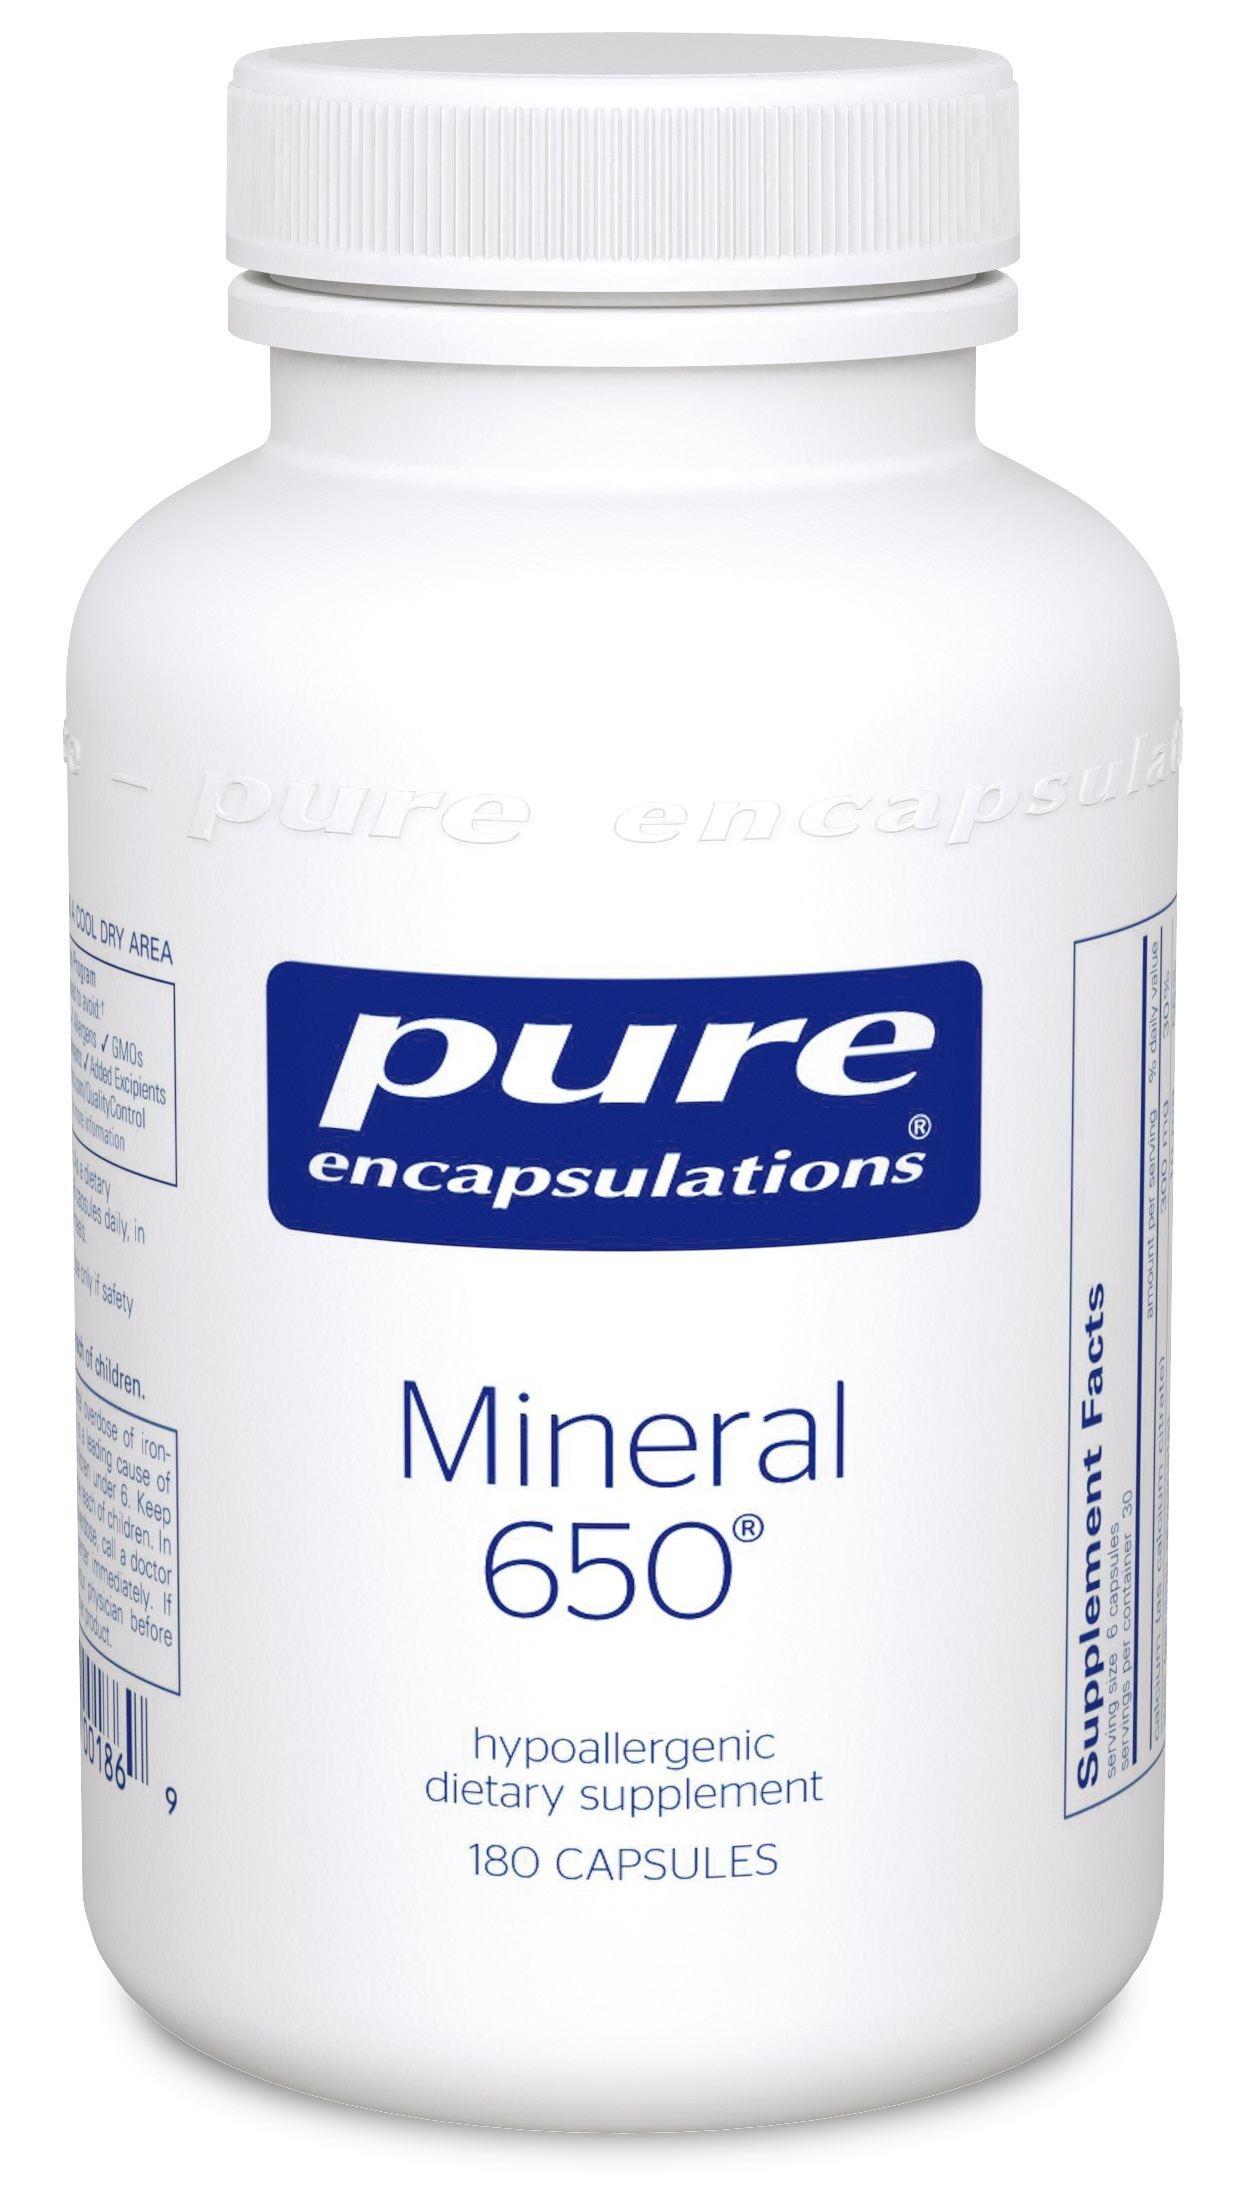 Pure Encapsulations Mineral 650 - 180's